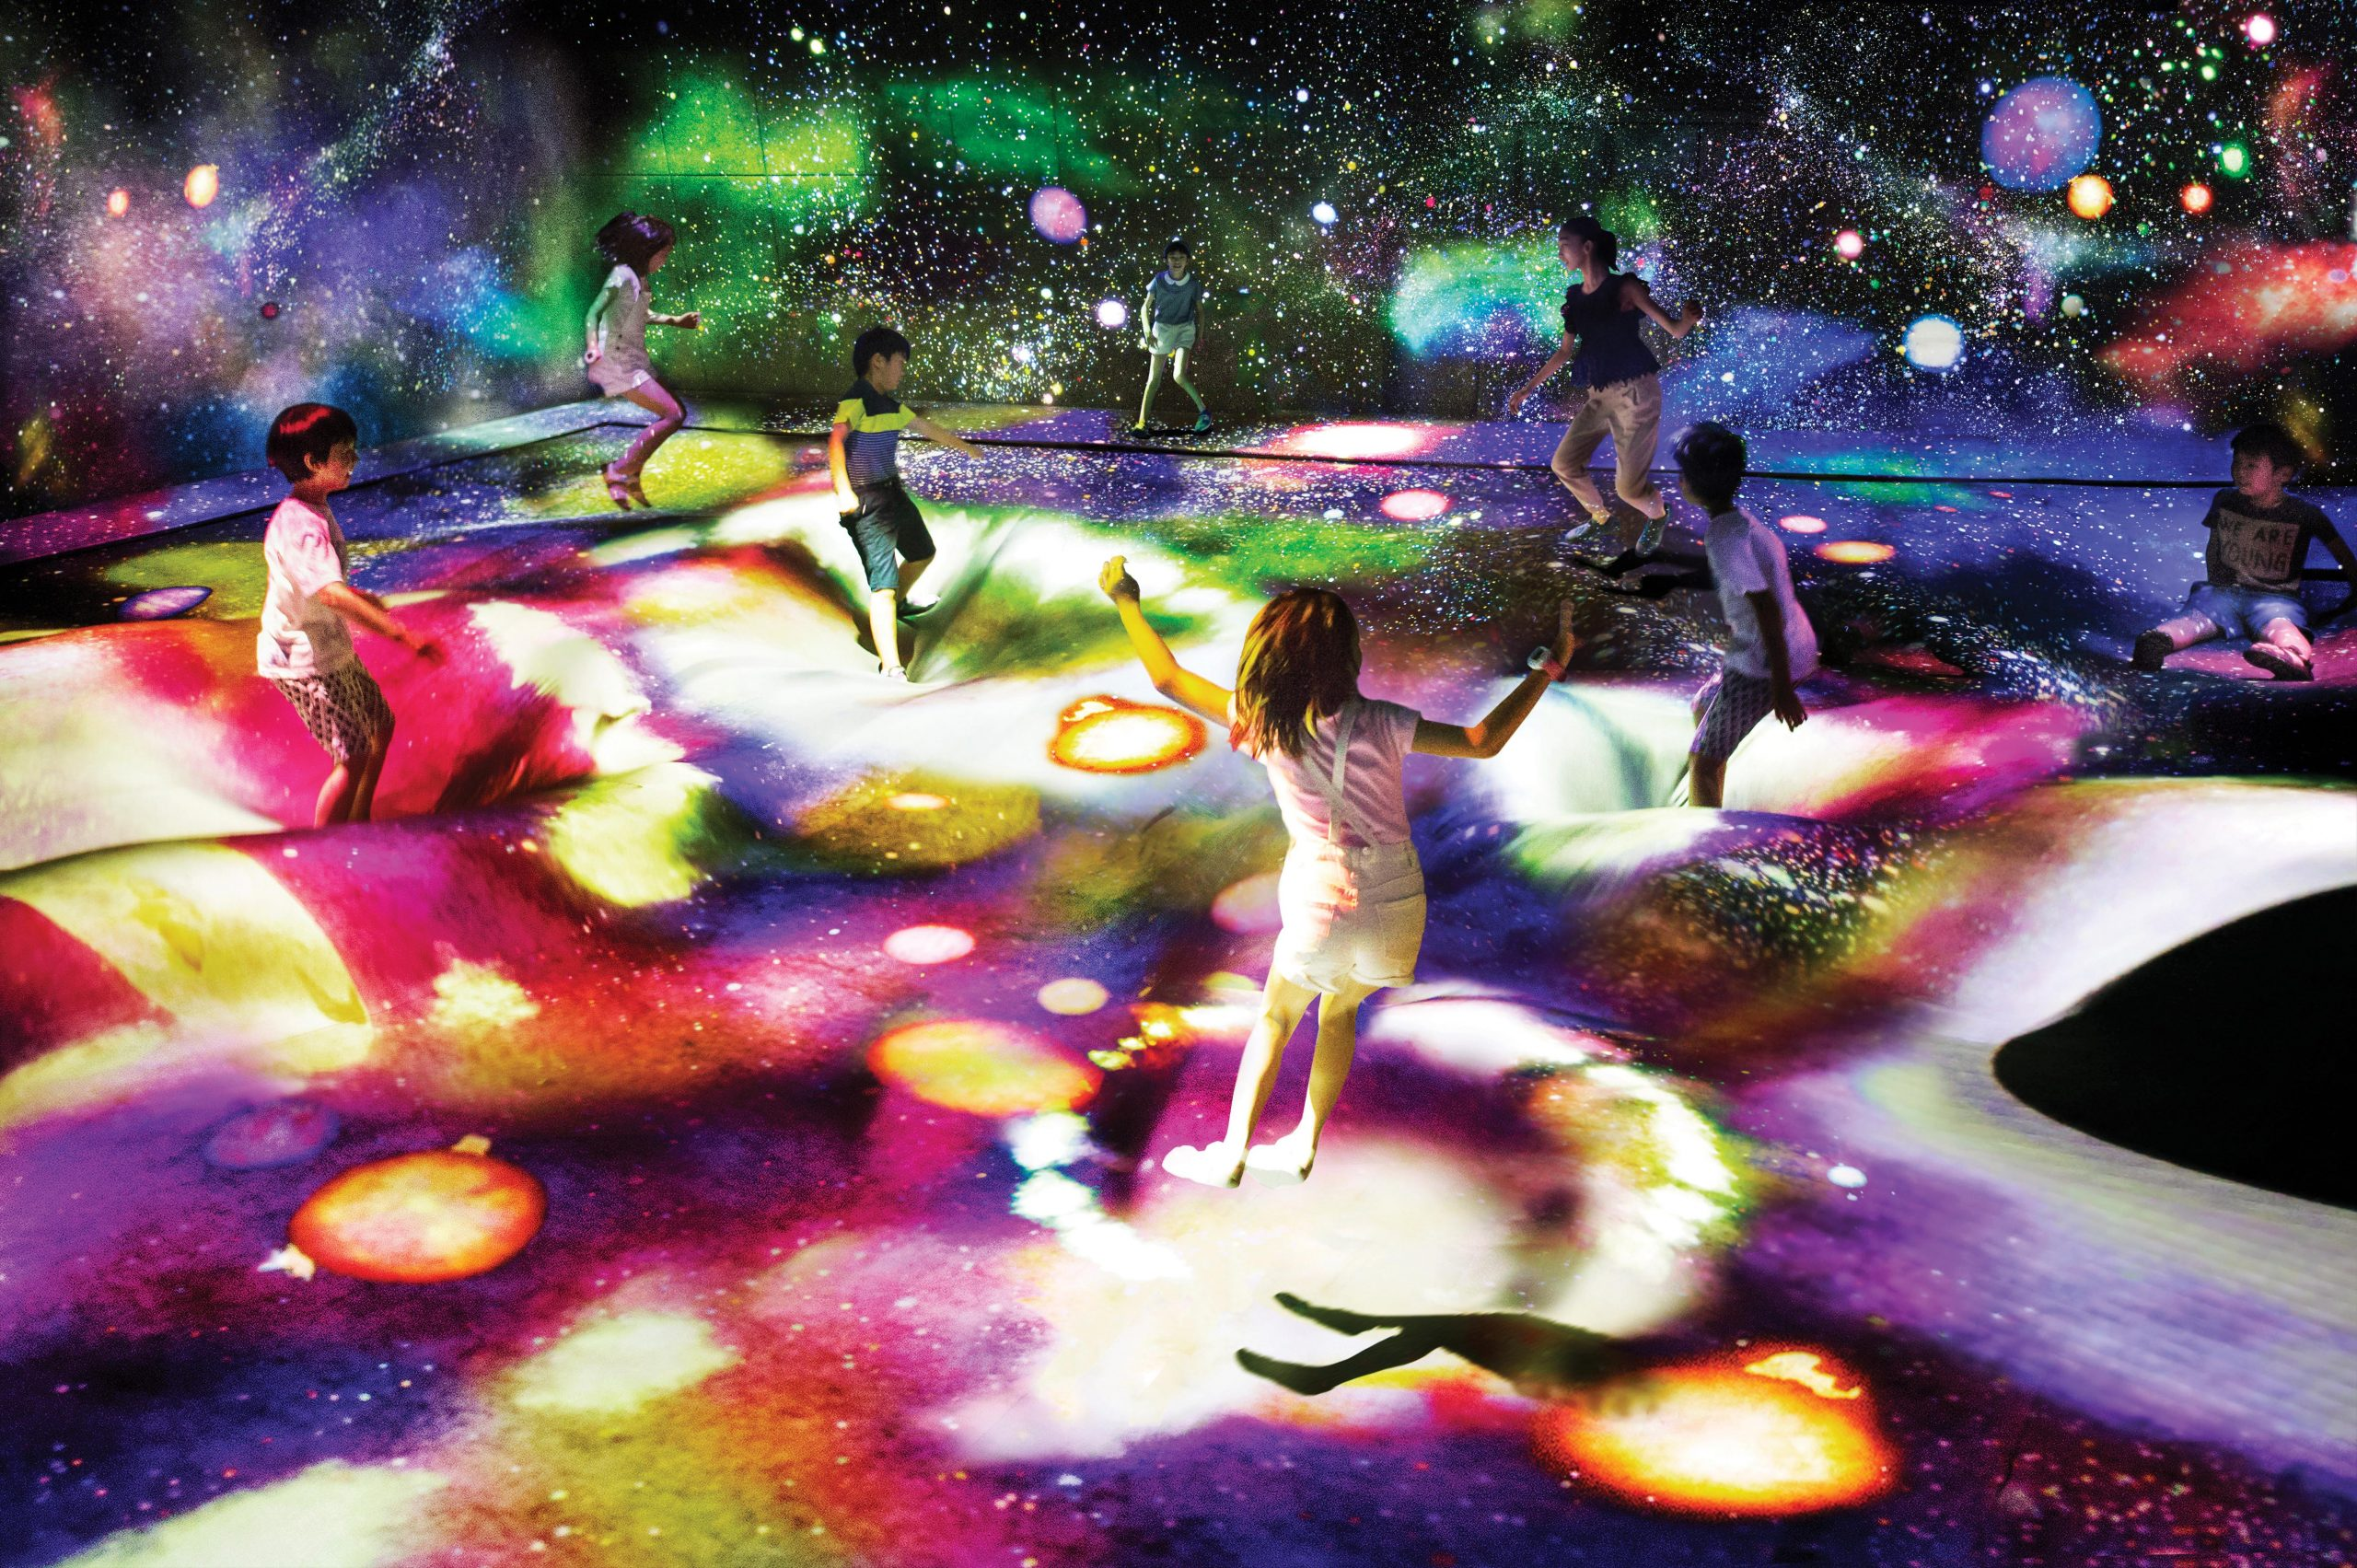 The teamLab exhibition's 'Multi Jumping Universe' section offers visitors an interactive experience under the stars. You can jump' or 'sink' with other visitors as new stars are born when the installation's surface becomes distorted - Photo by teamLab